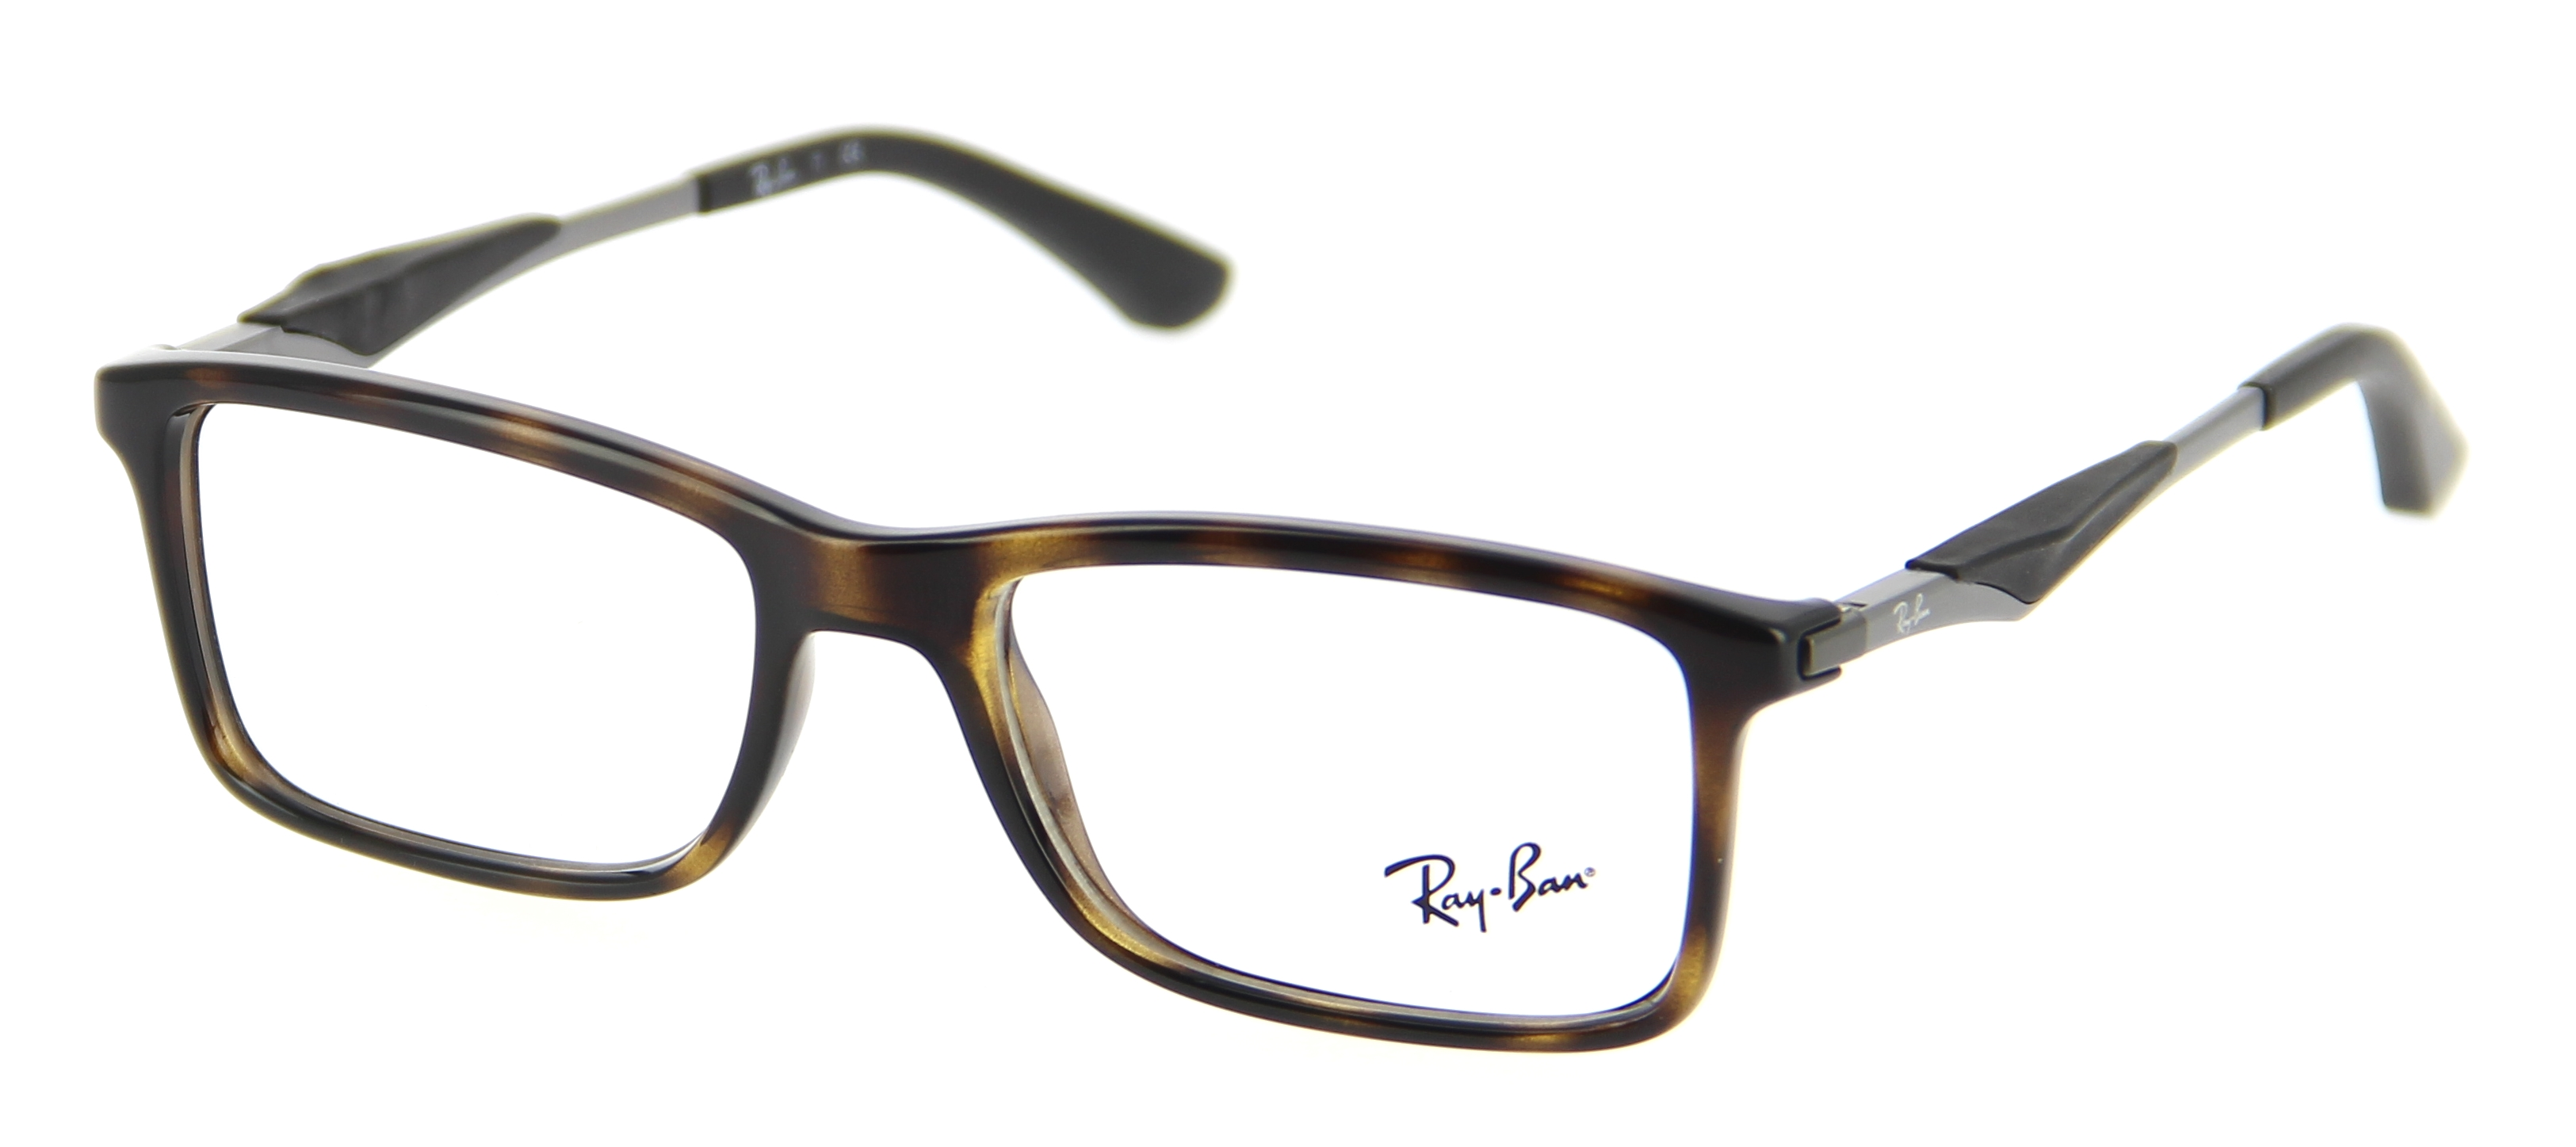 5539c1c7a7 RayBan RX6336 - Family Vision Center 1